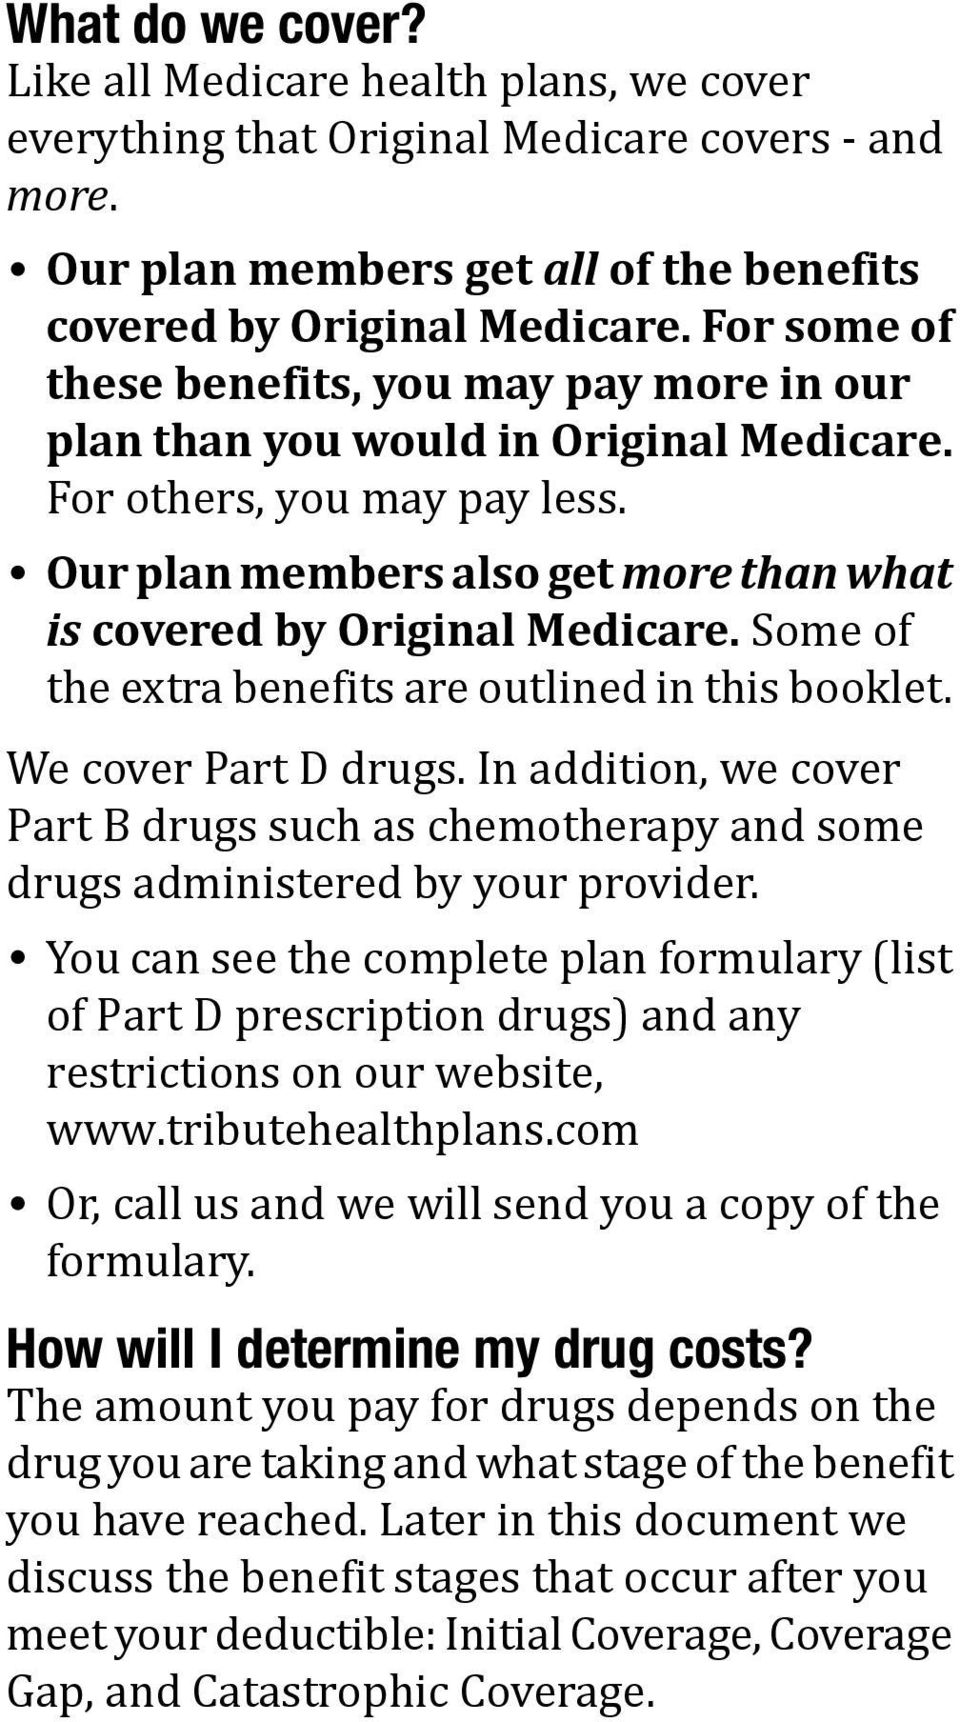 Some of the extra benefits are outlined in this booklet. We cover Part D drugs. In addition, we cover Part B drugs such as chemotherapy and some drugs administered by your provider.